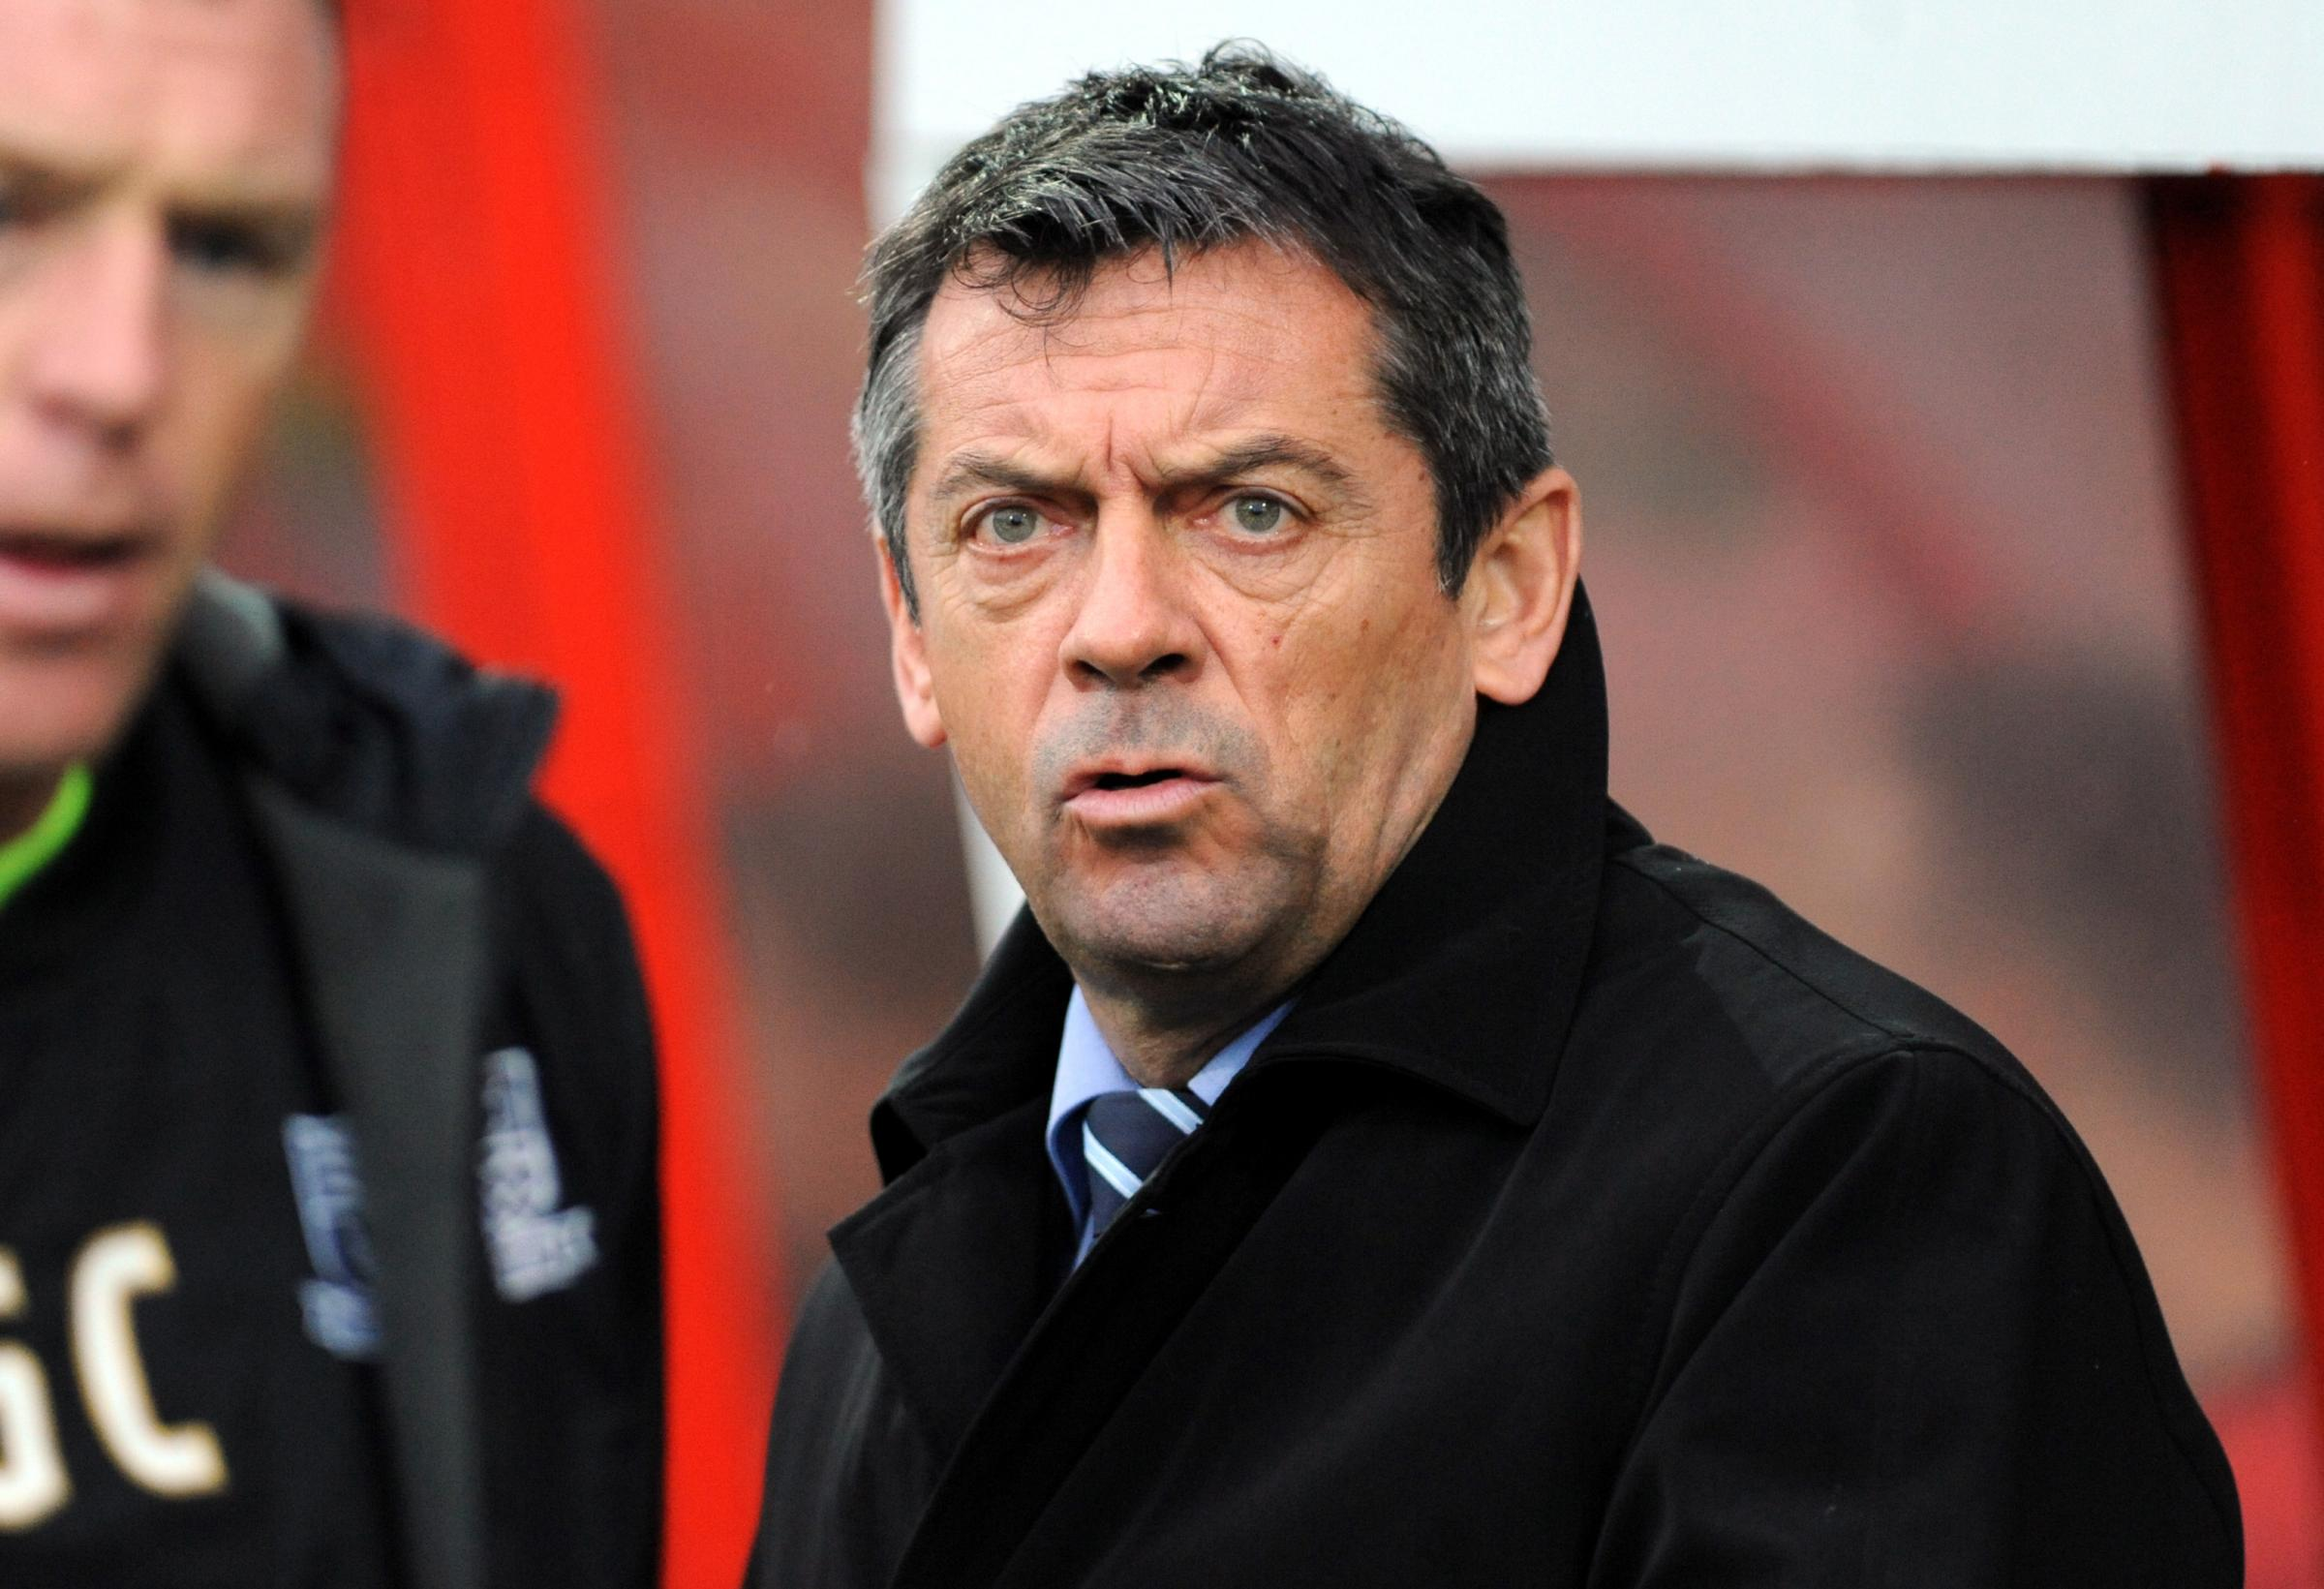 Phil Brown watched Cheltenham's draw with Notts County